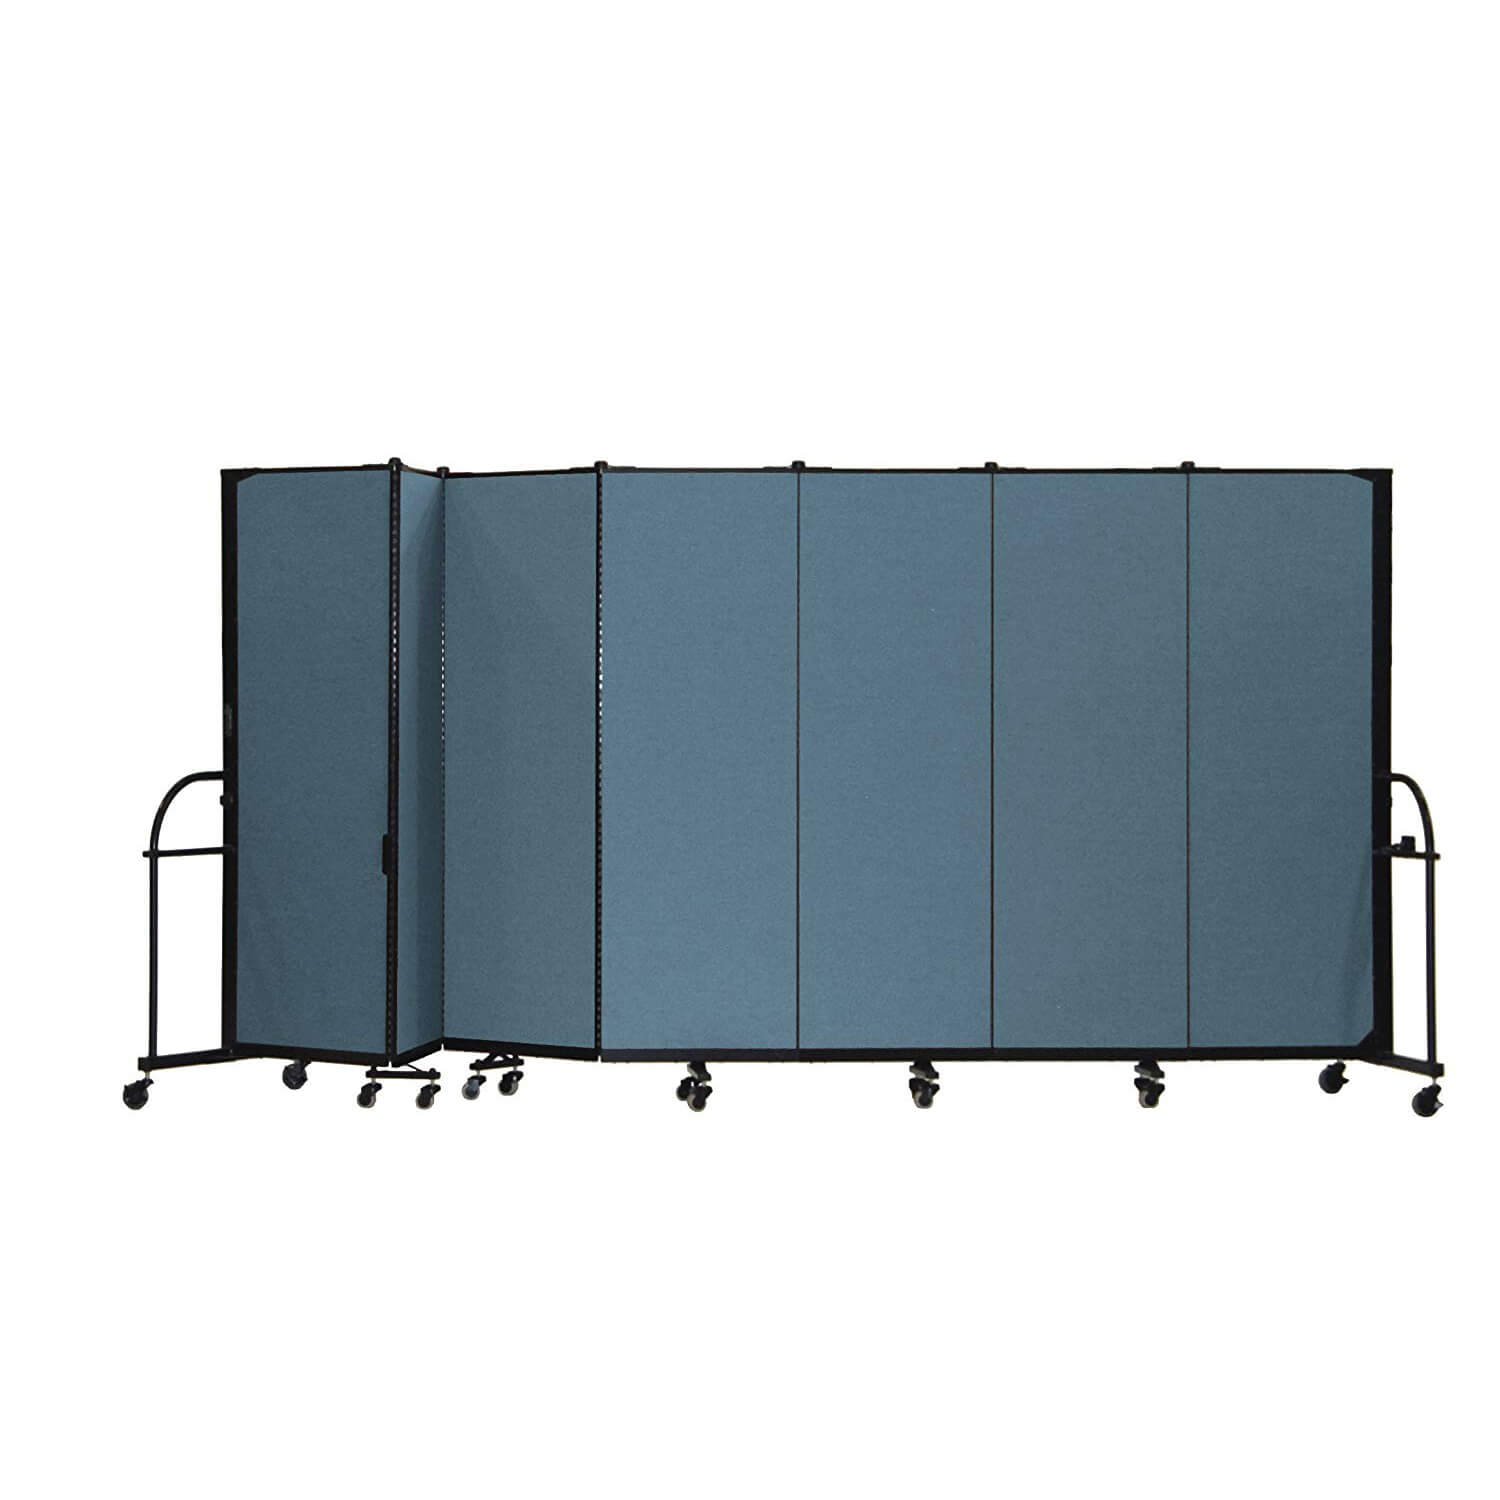 Panel room dividers CUB QSCFSL607D B RCS